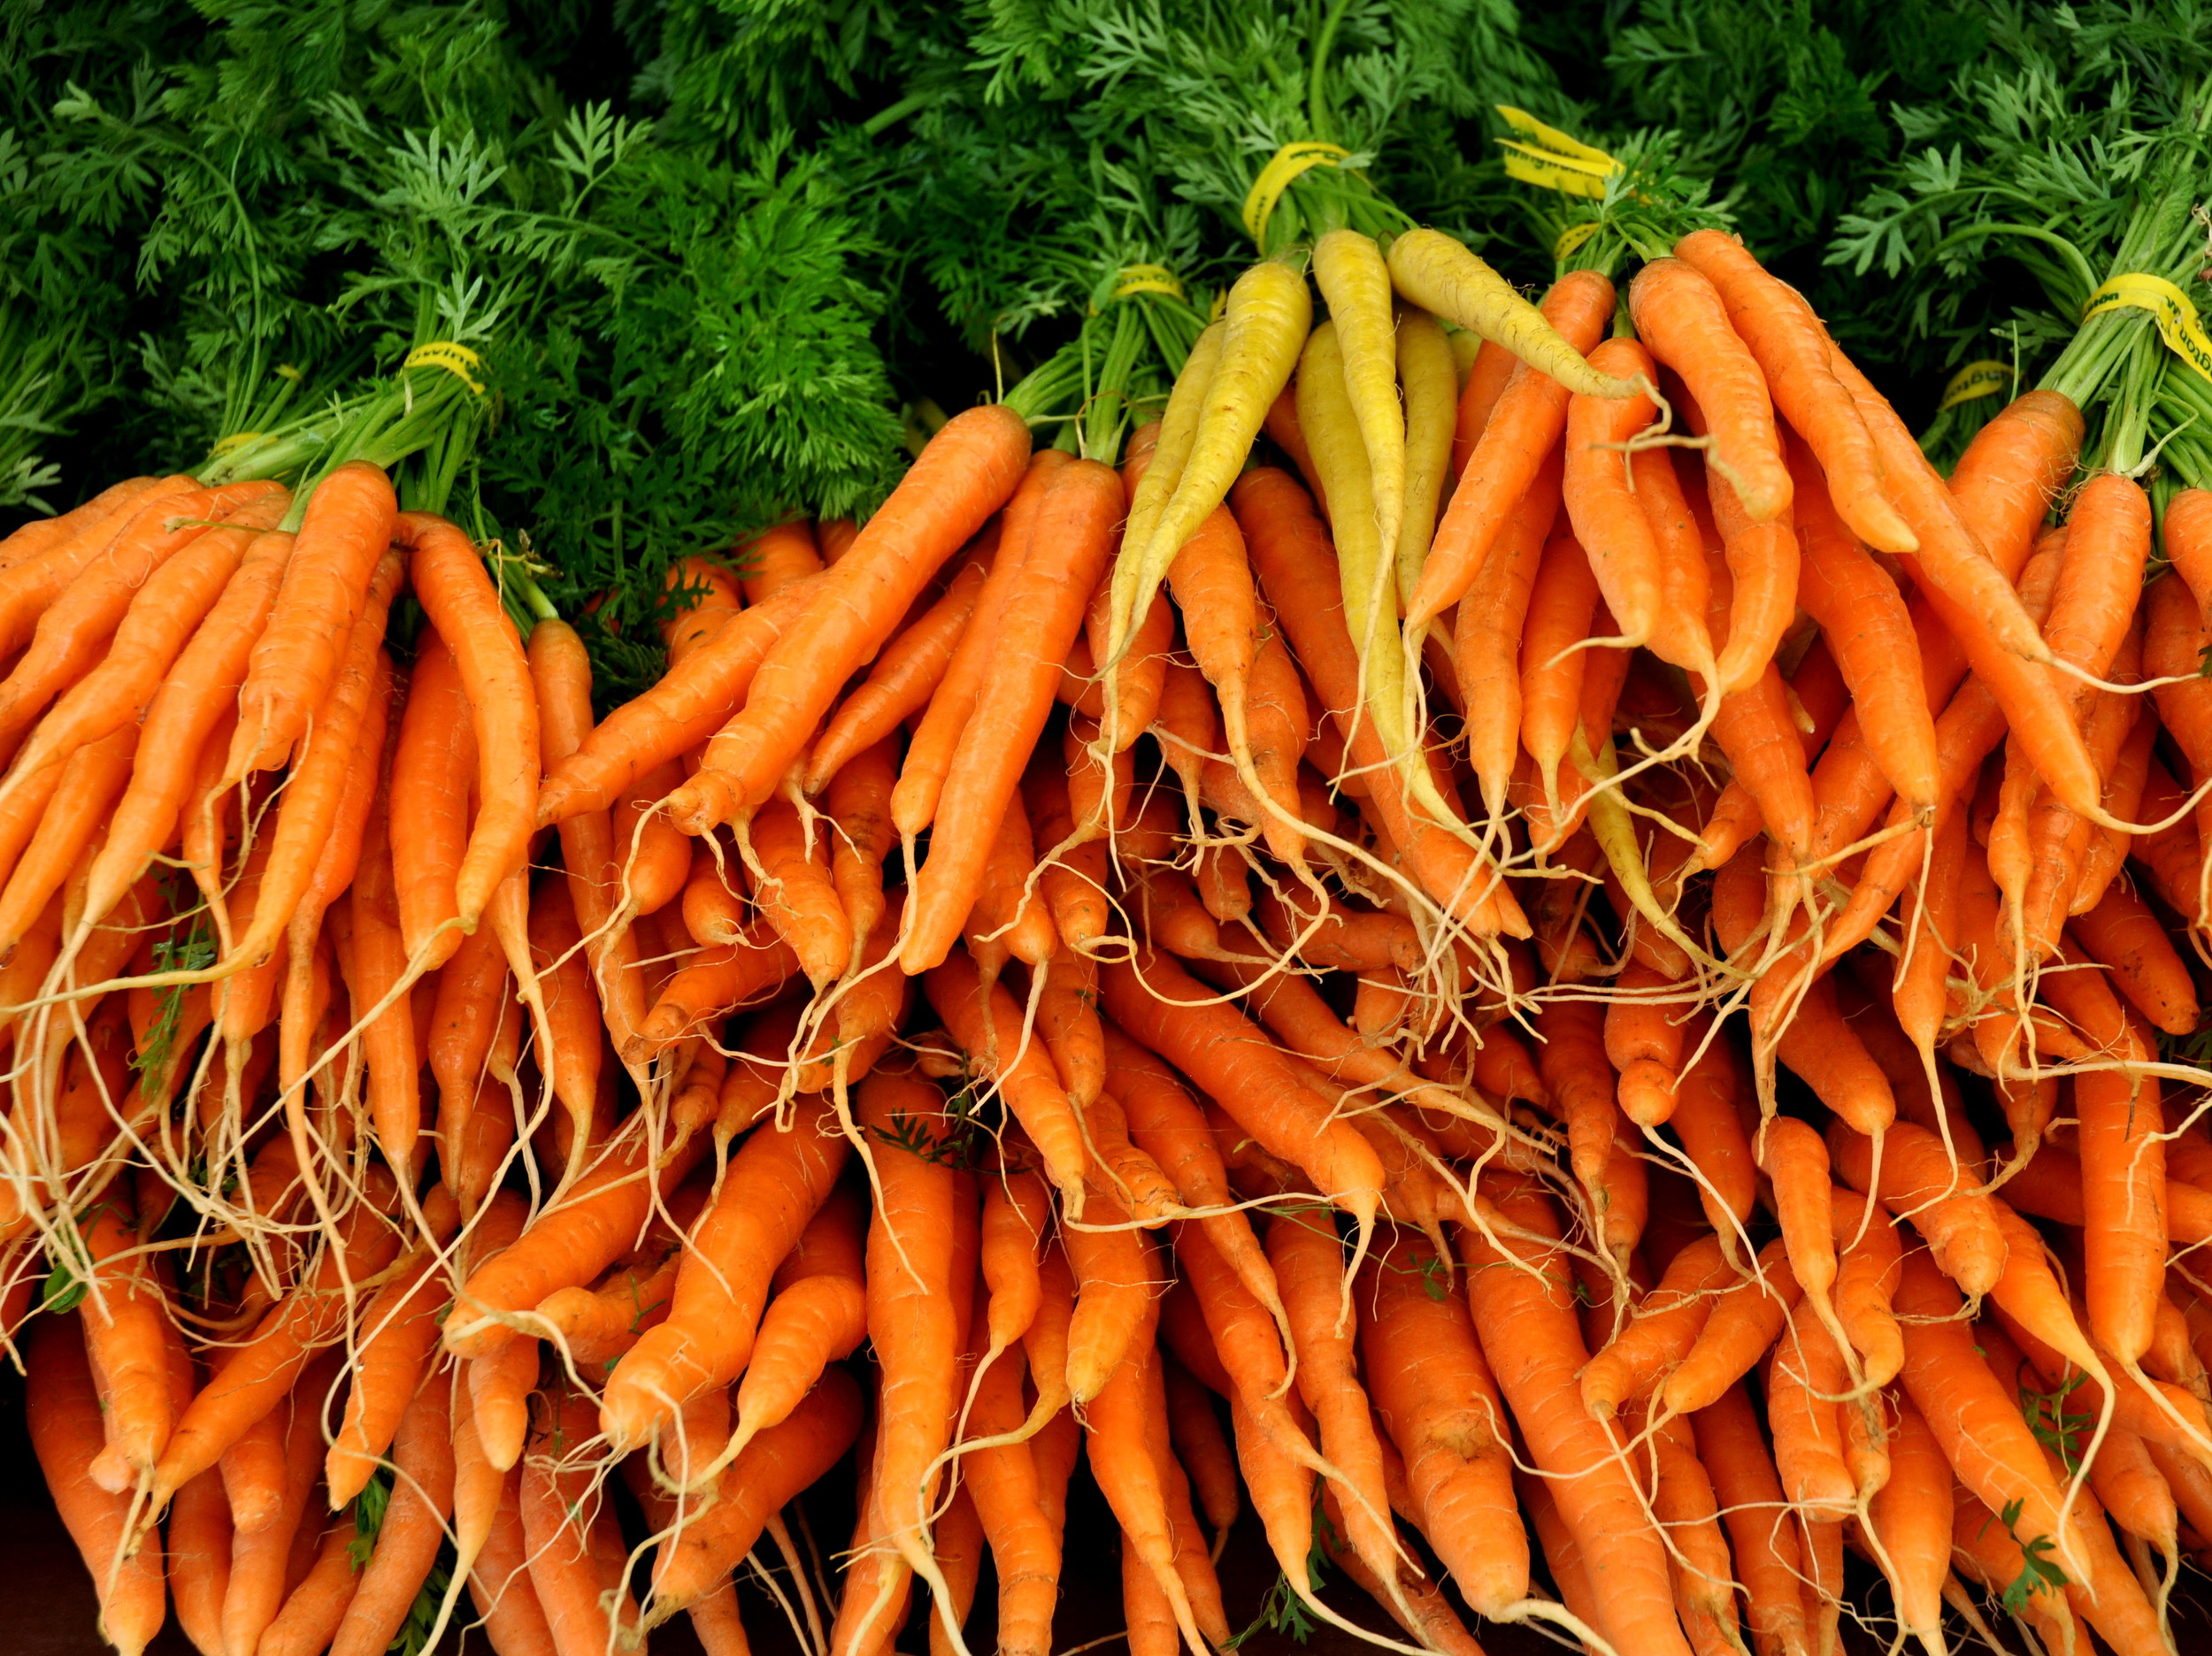 Carrots from Alm Hill Gardens.. Photo copyright 2014 by Zachary D. Lyons.